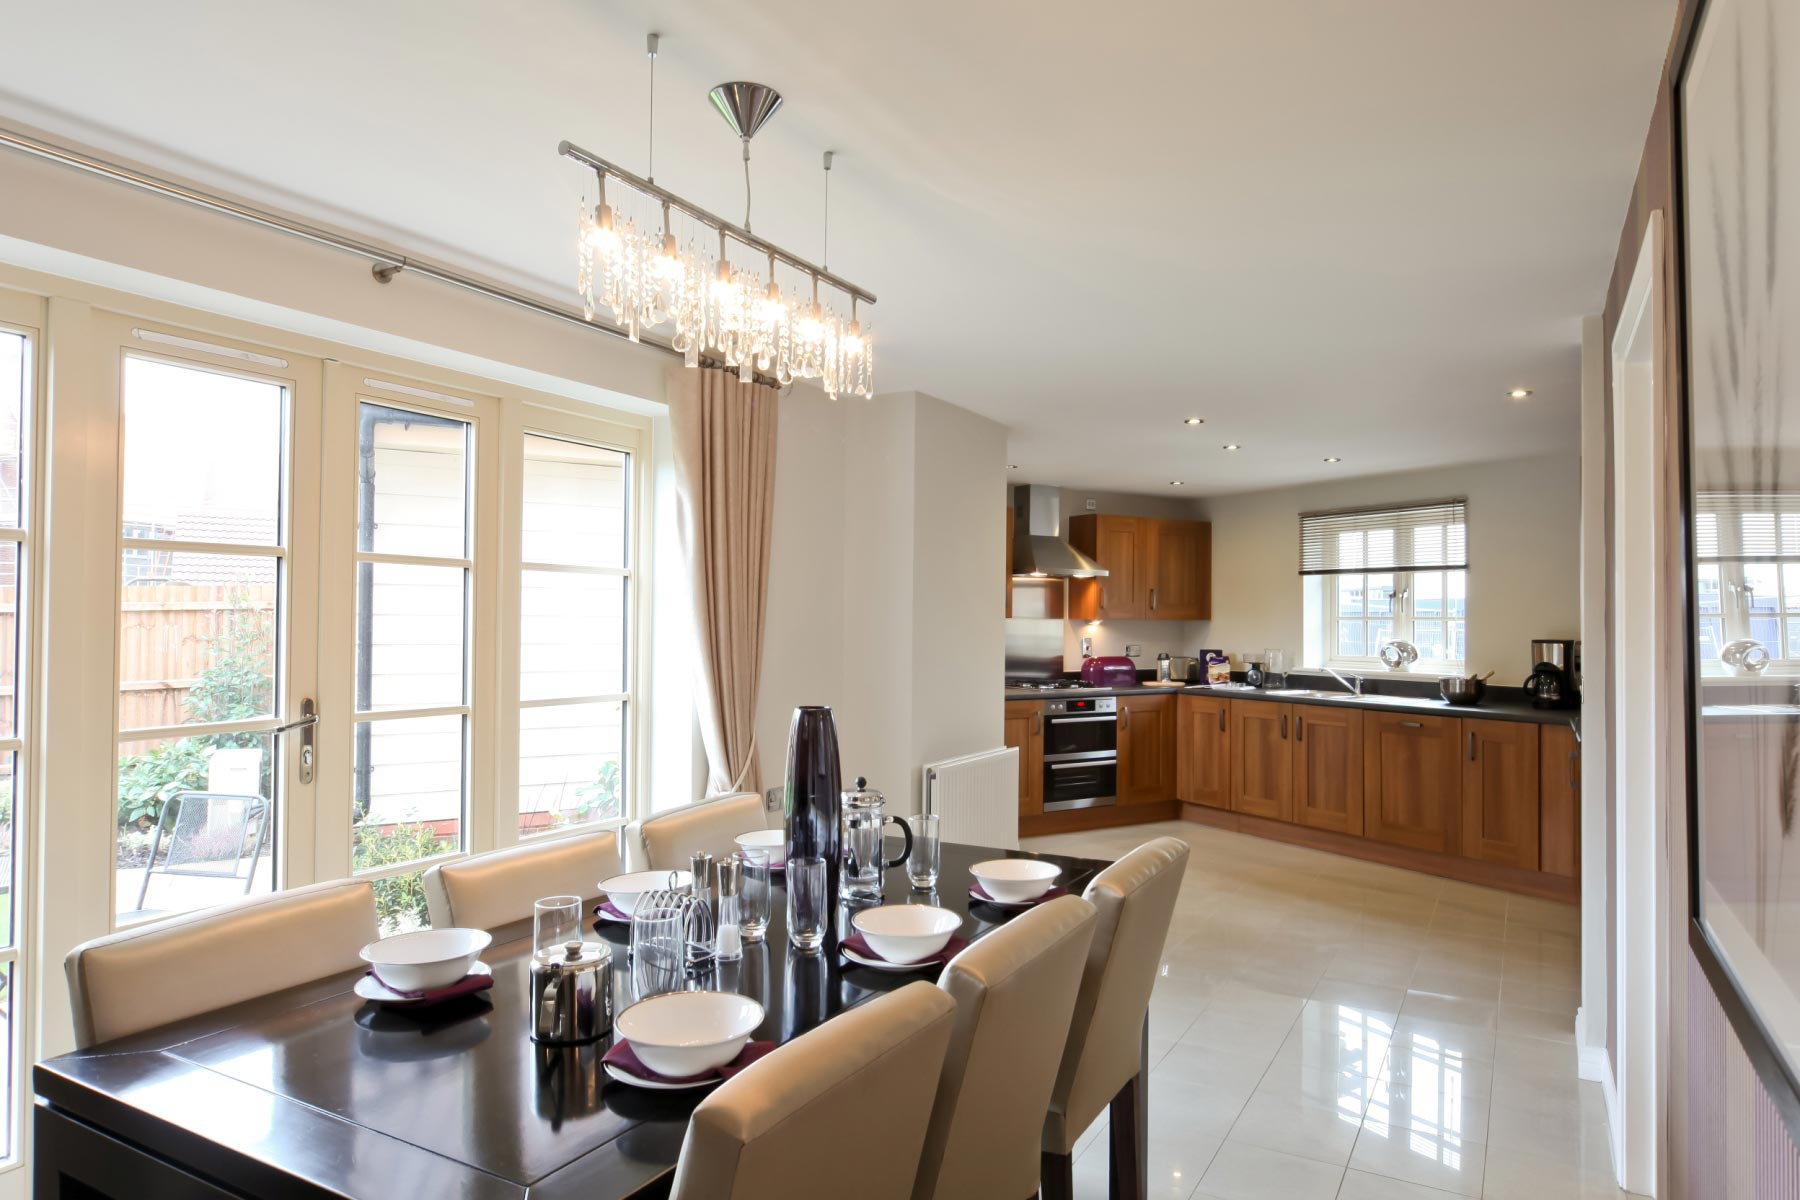 Taylor Wimpey typical kitchen/dining room